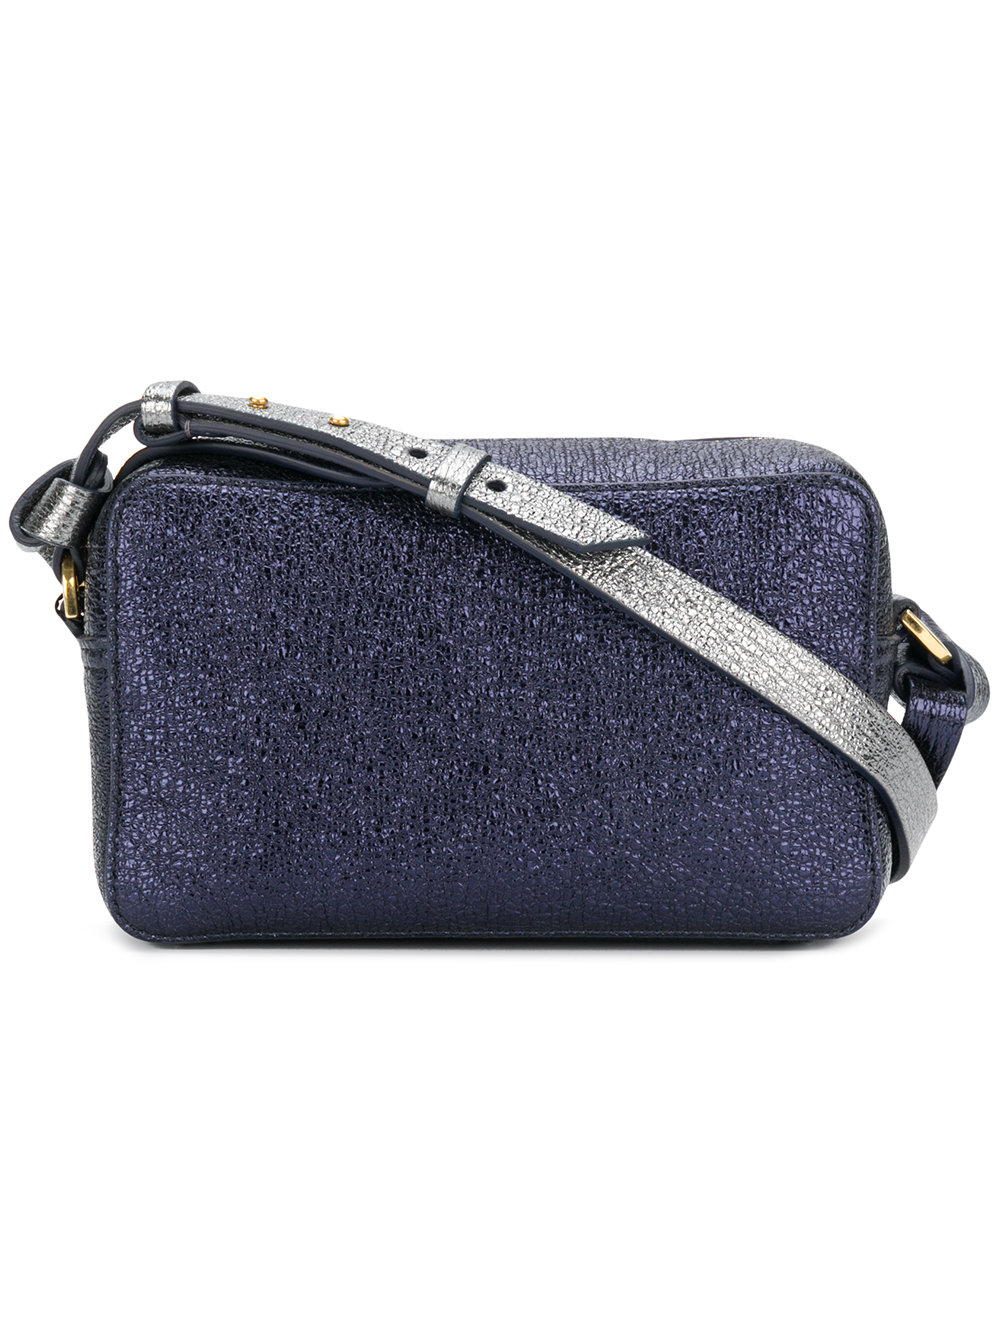 Anya Hindmach crossbody mini circle in crinkled metallic